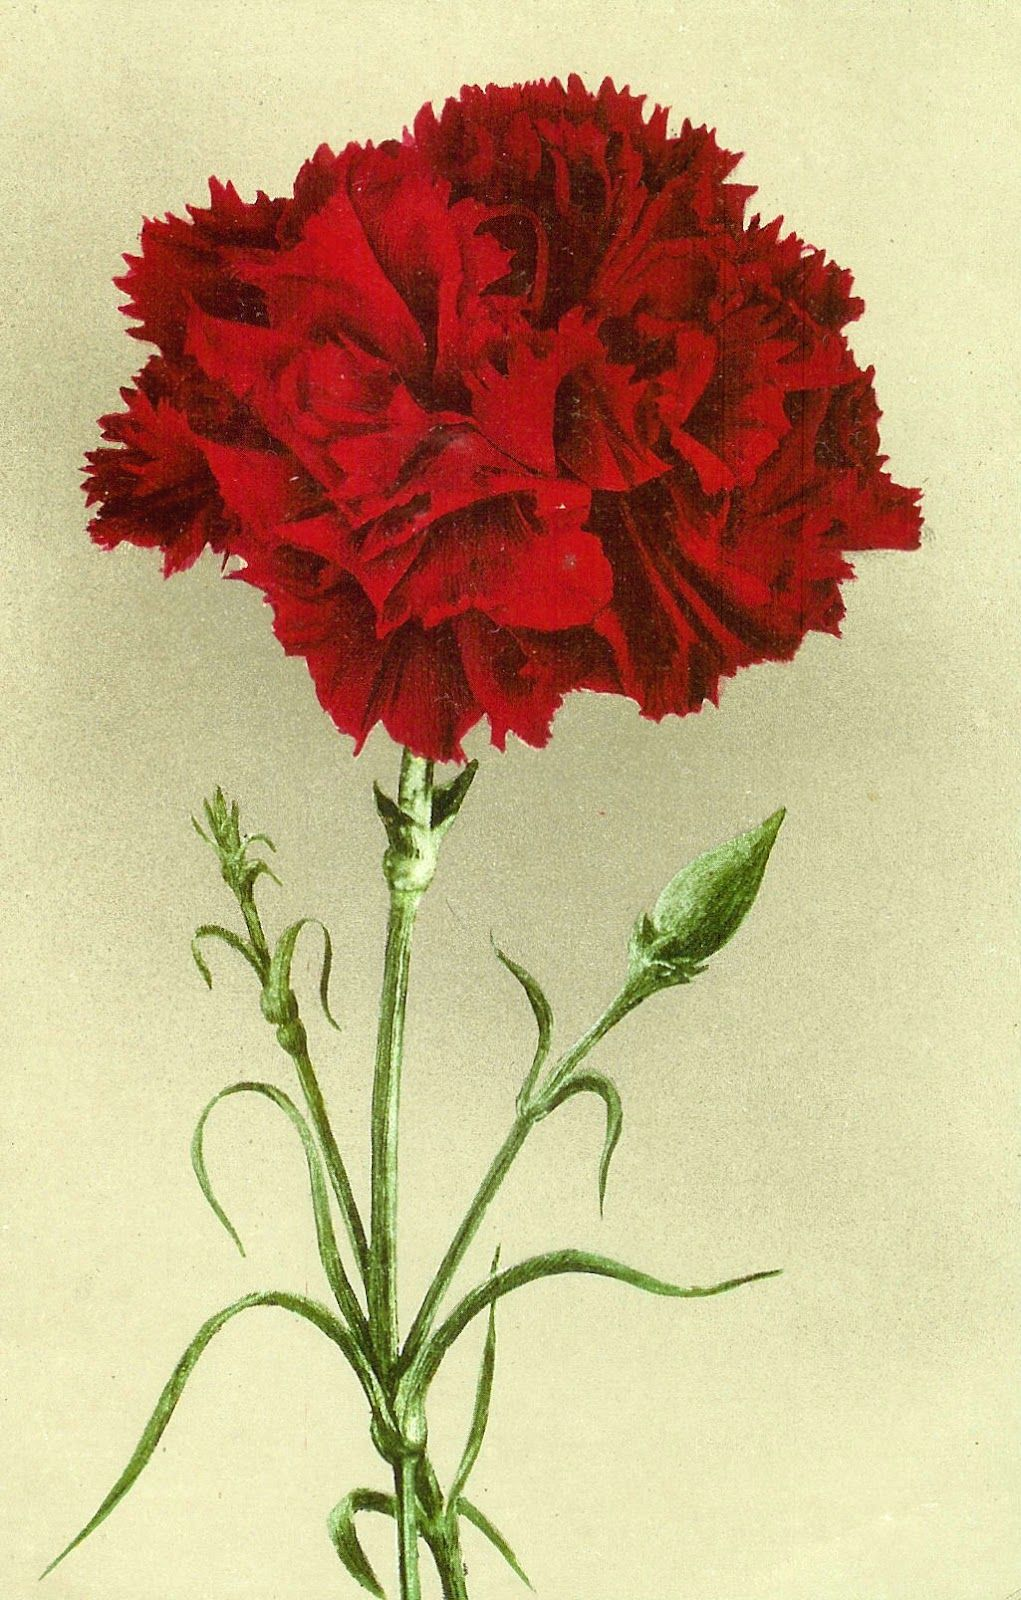 Vintage Flower Clip Art Vintage Graphic Of Red Carnation On